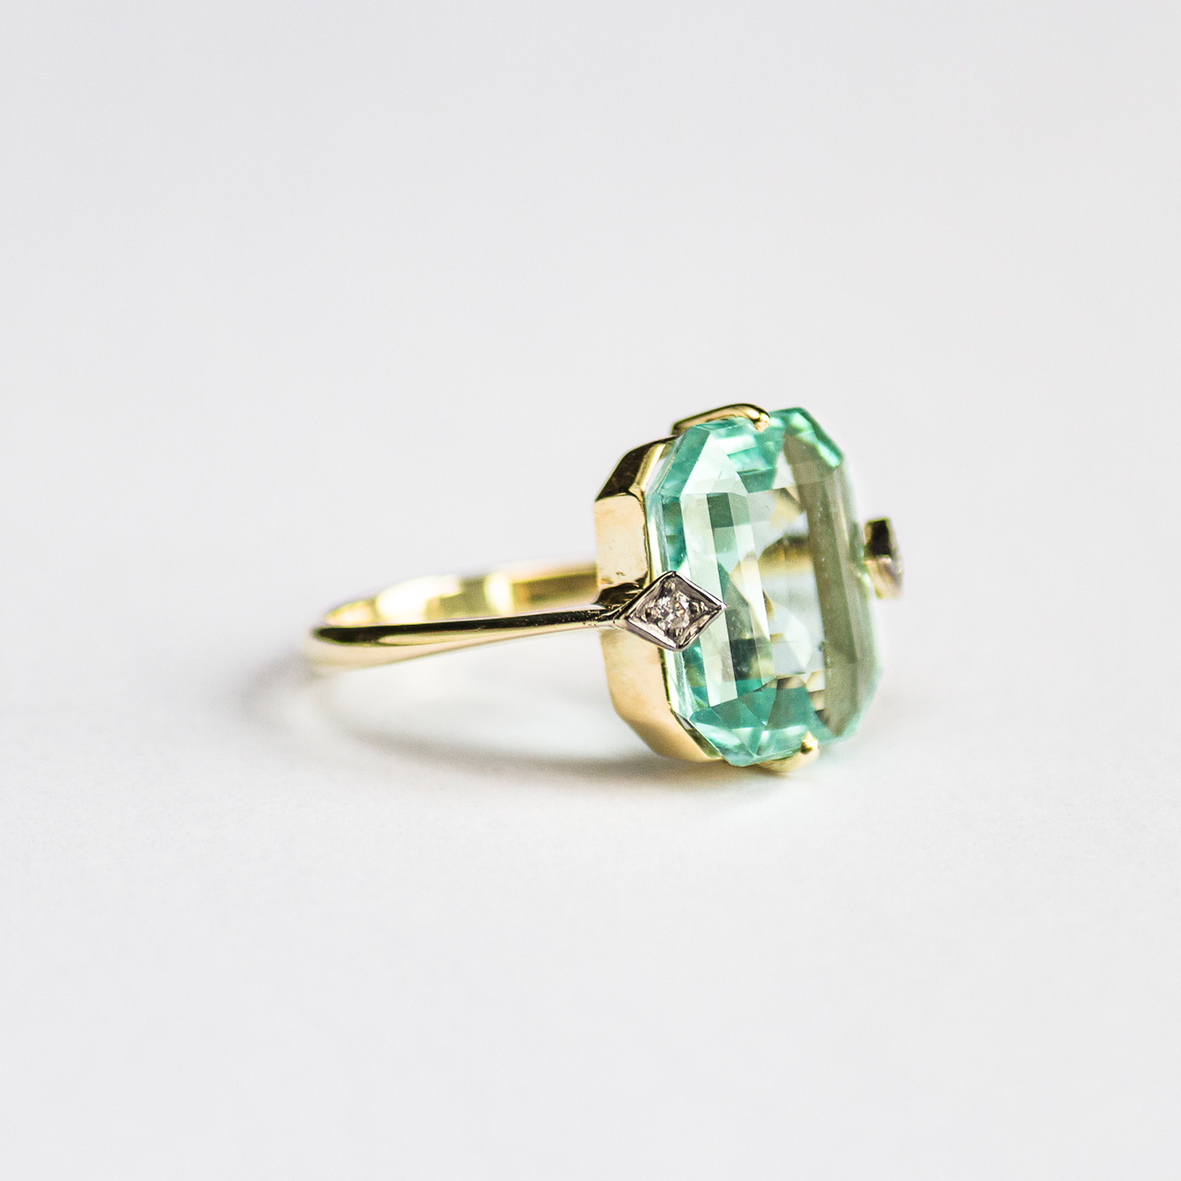 1. OONA_gems of ceylon_ficha3_green aquamarine ring